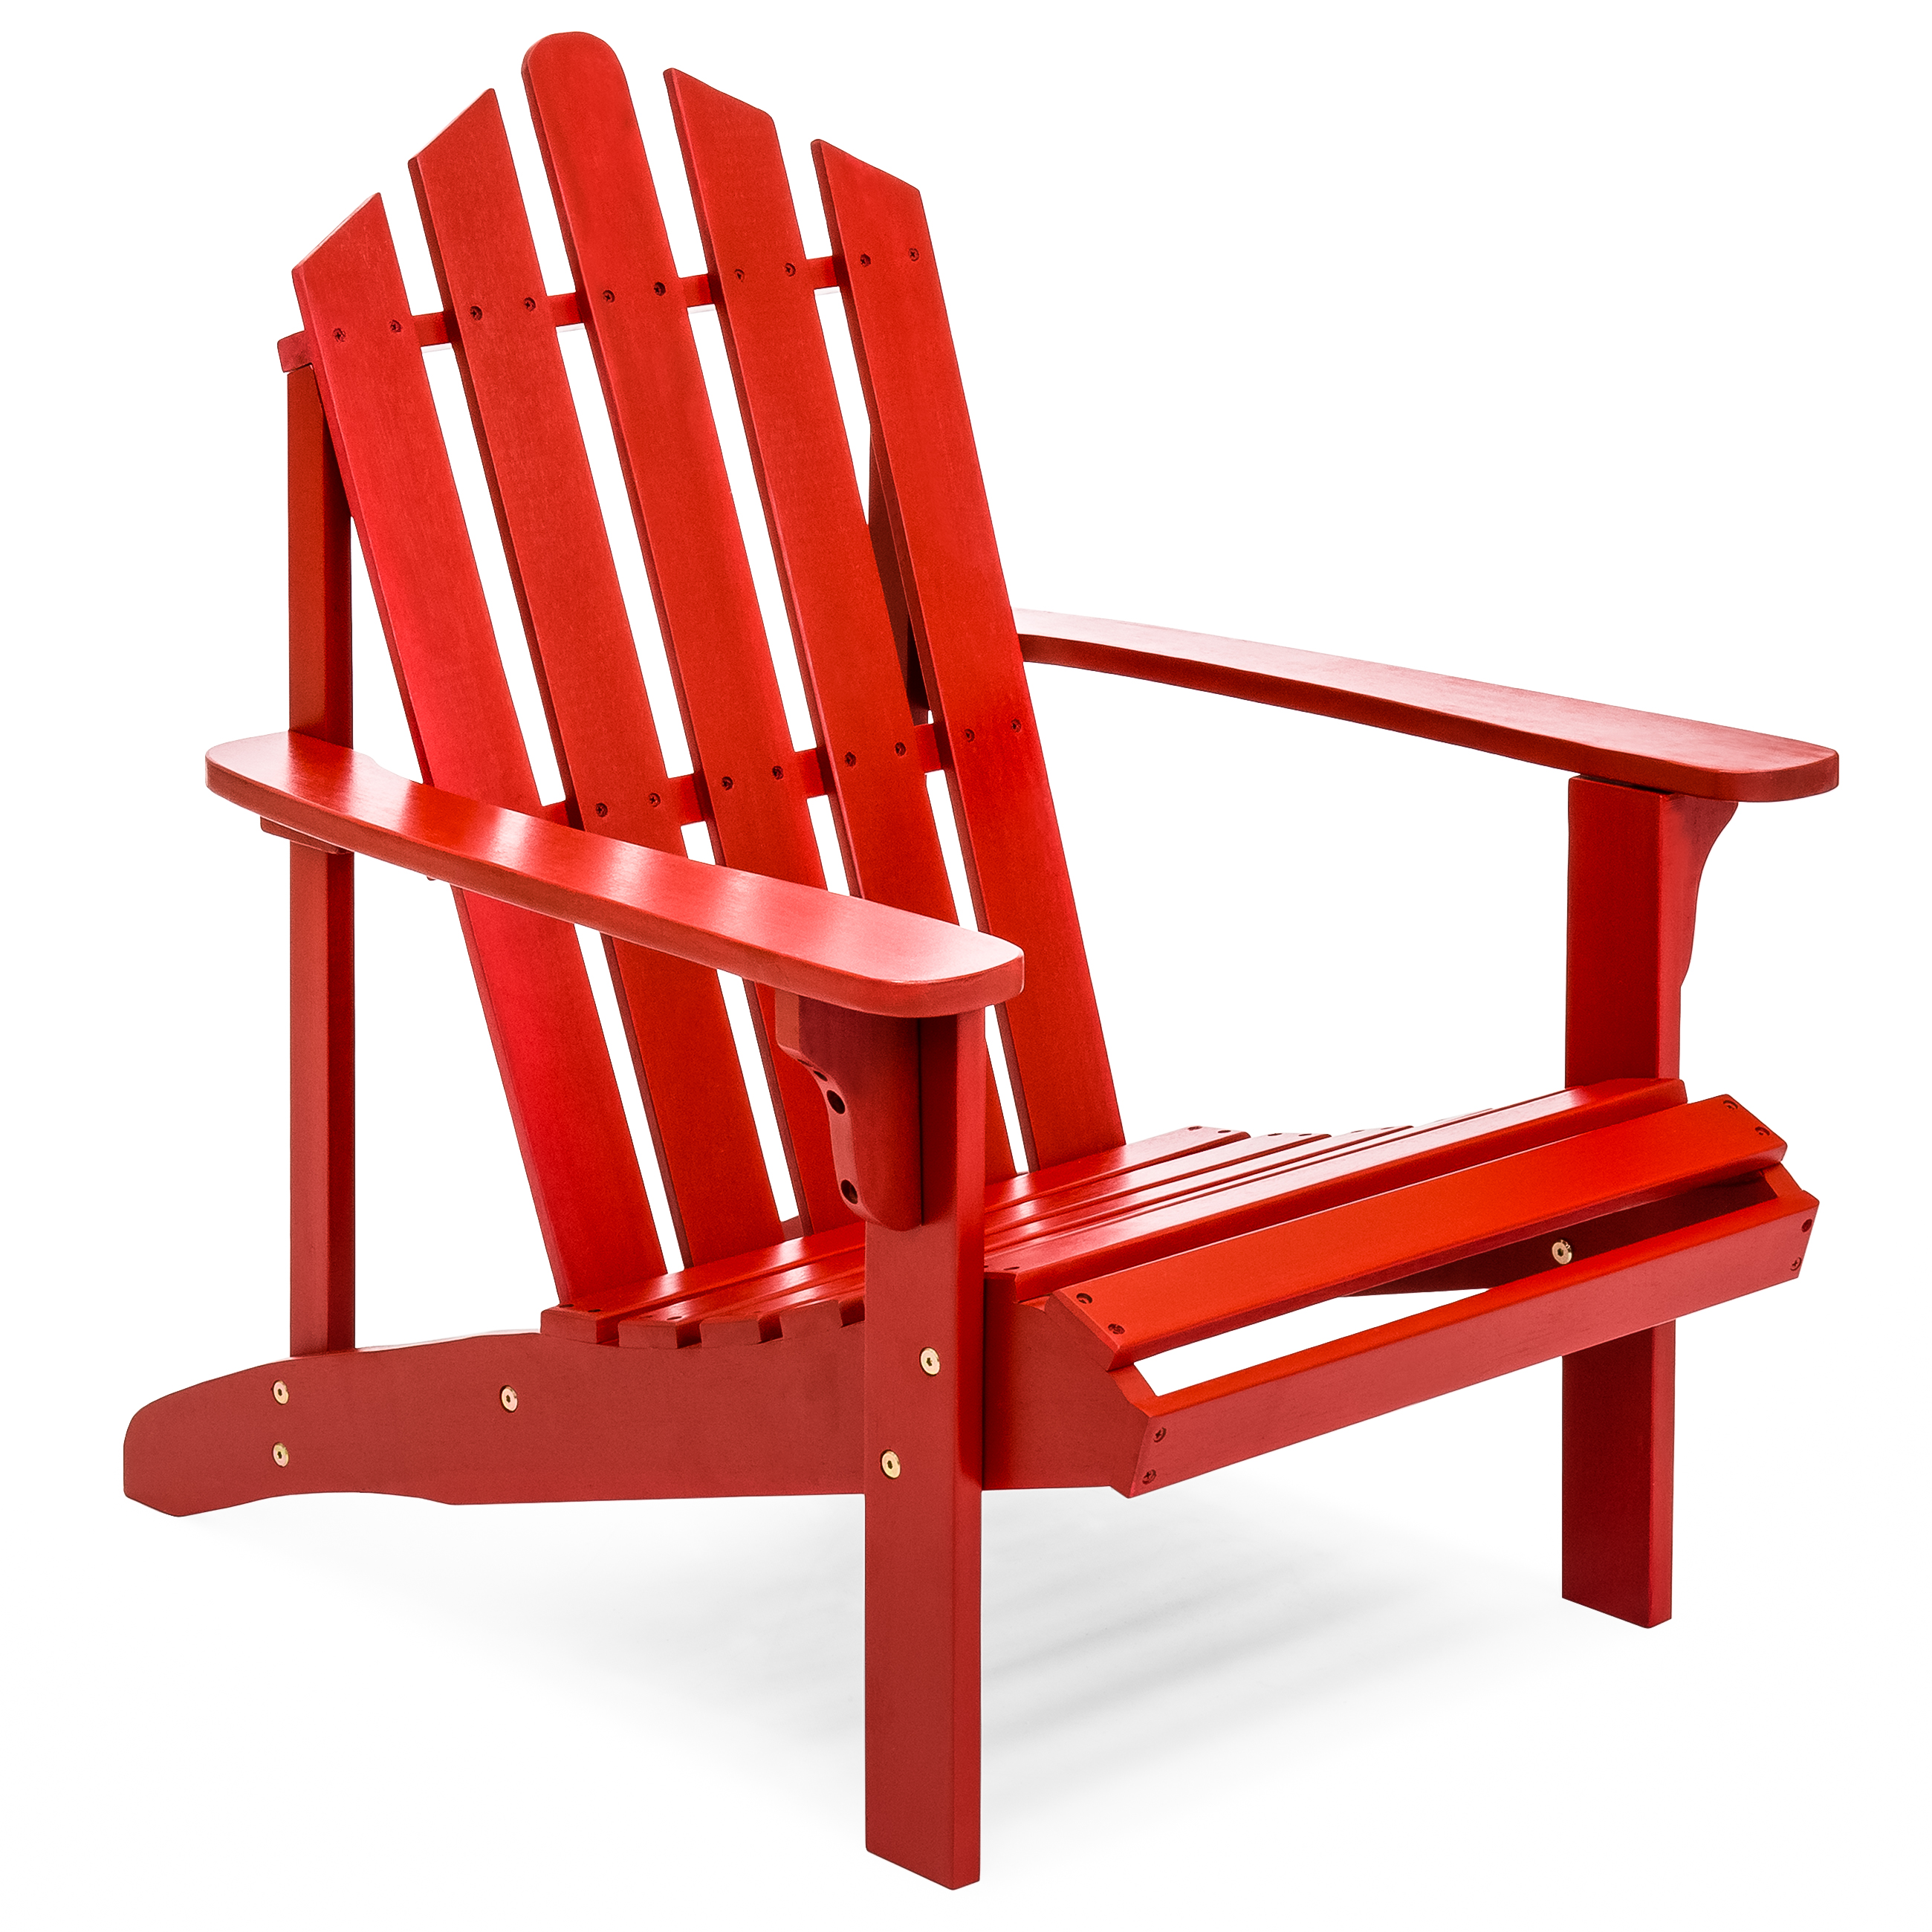 Best Choice Products Outdoor Patio Acacia Wooden Adirondack Chair (Red) by Best Choice Products